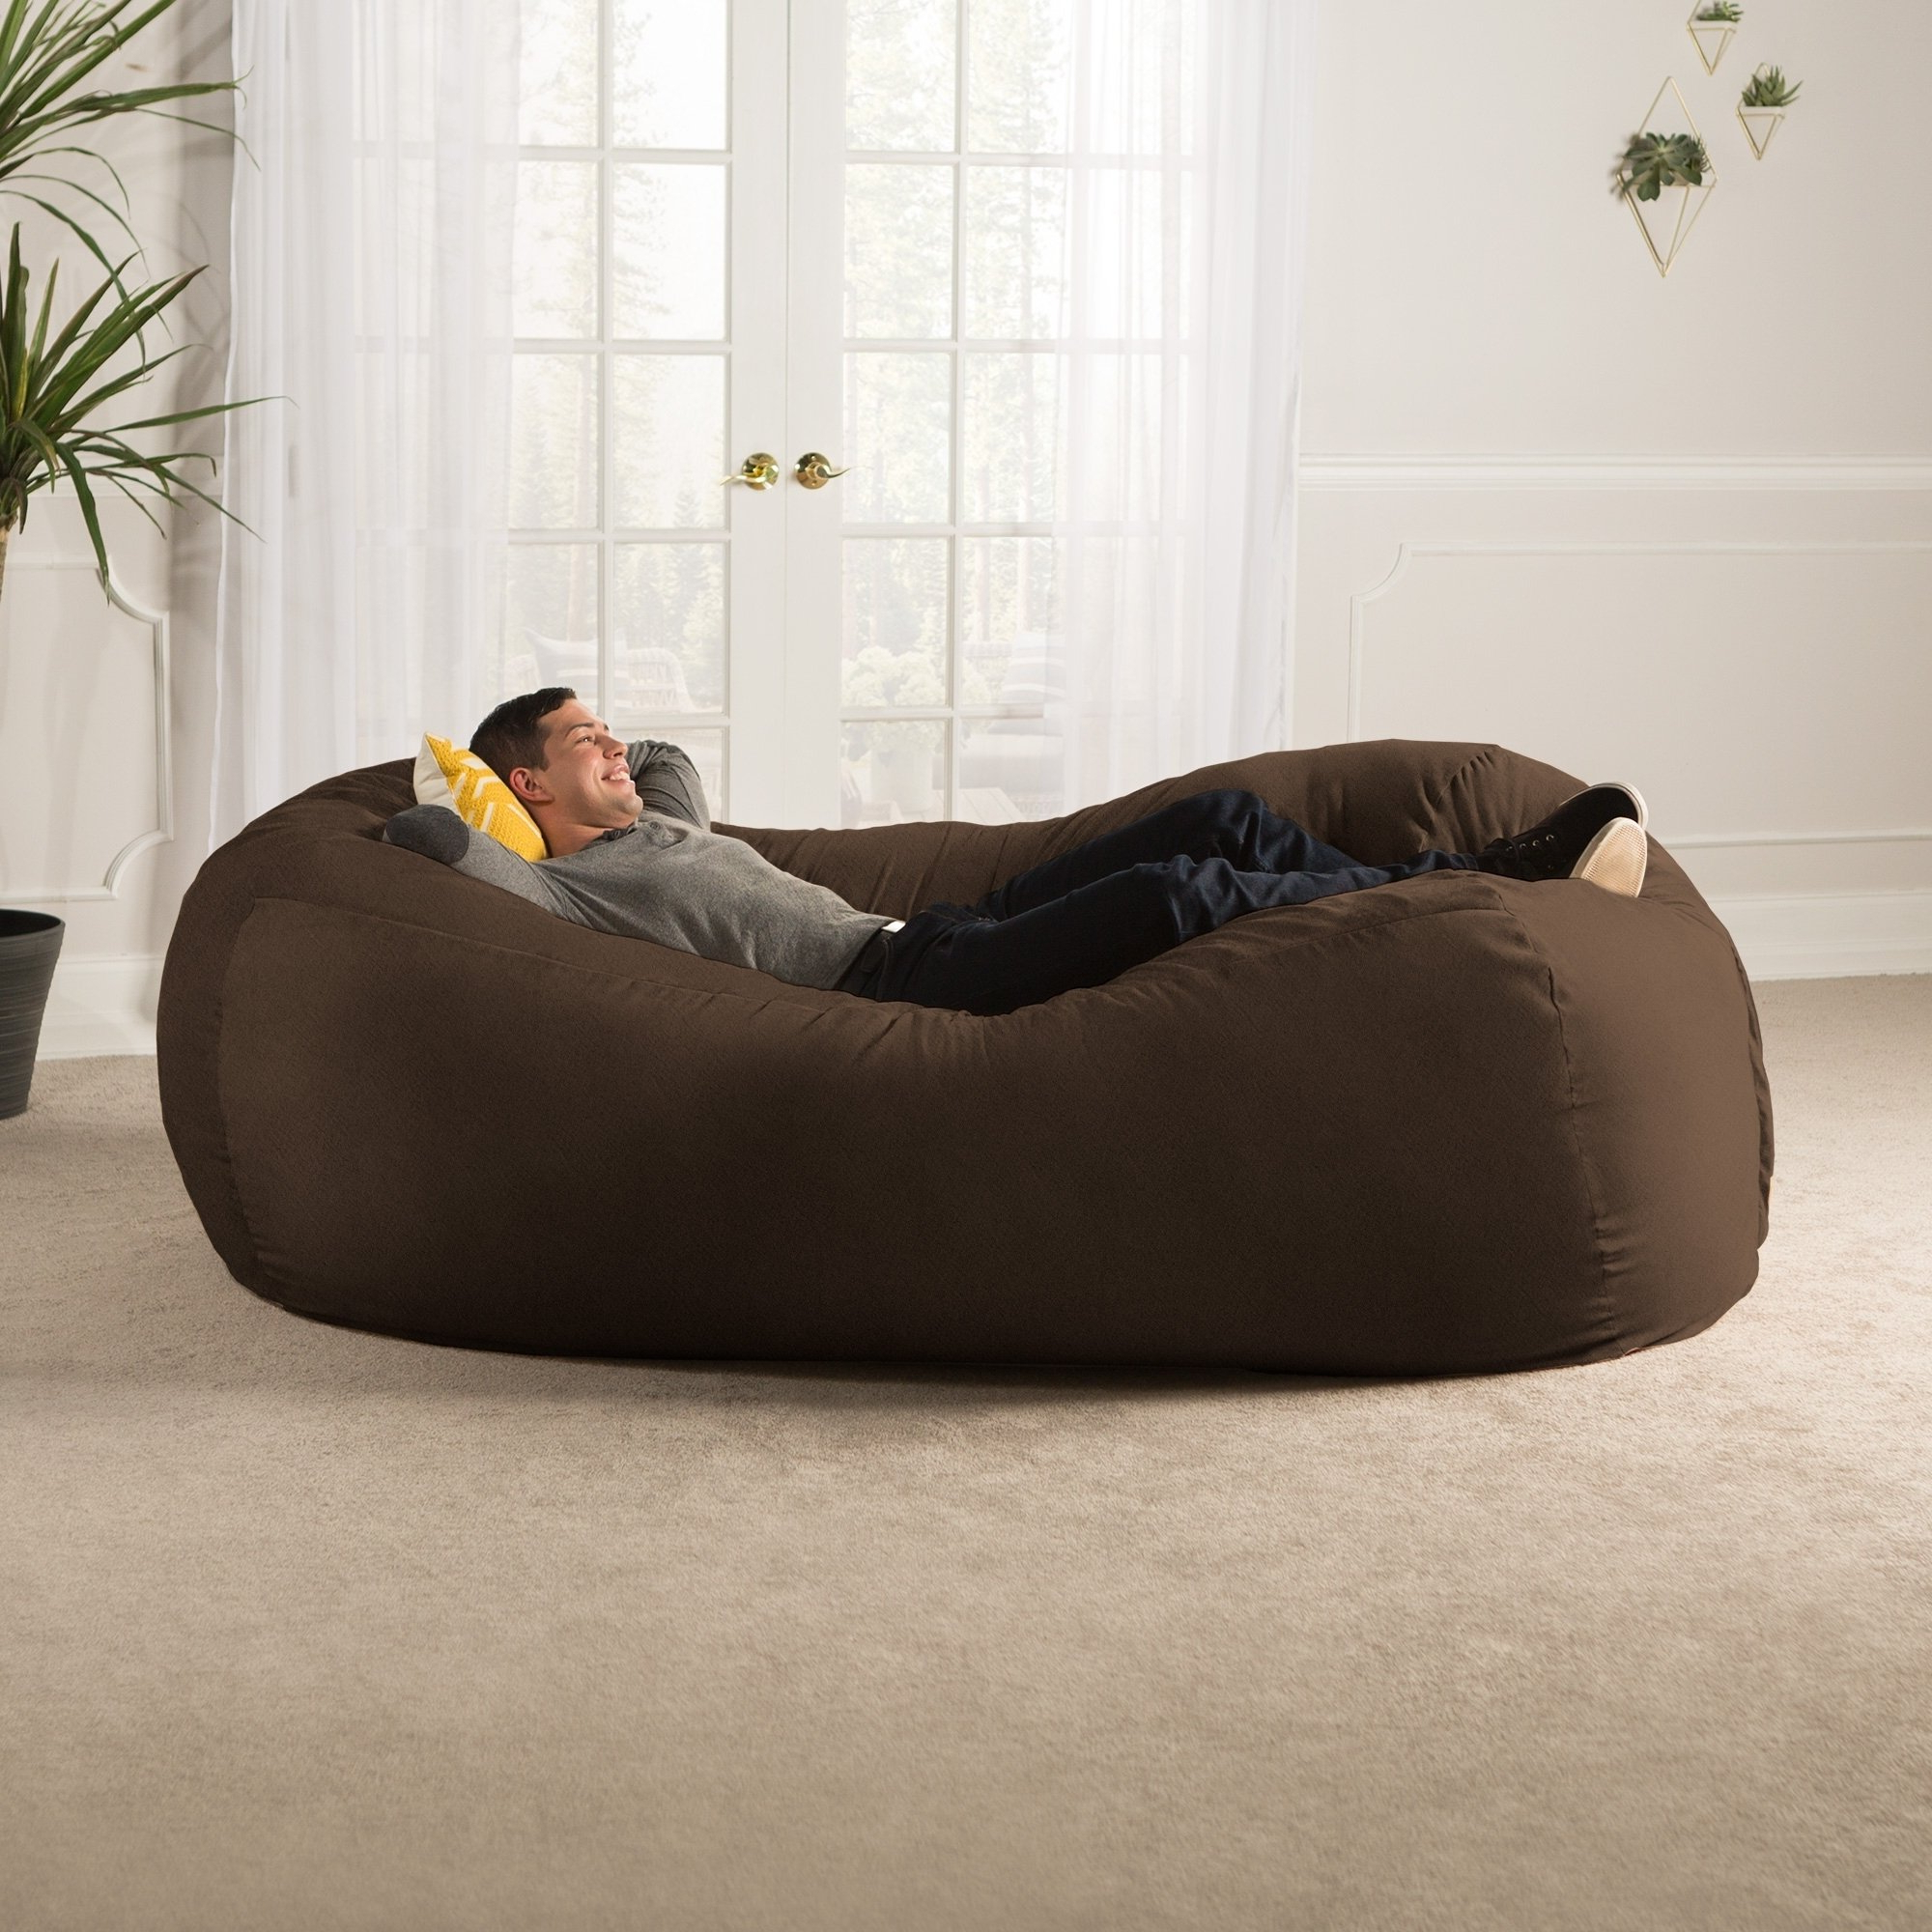 Shop Jaxx 7' Bean Bag Sofa – Free Shipping Today – Overstock With Favorite Bean Bag Sofa Chairs (Gallery 3 of 20)